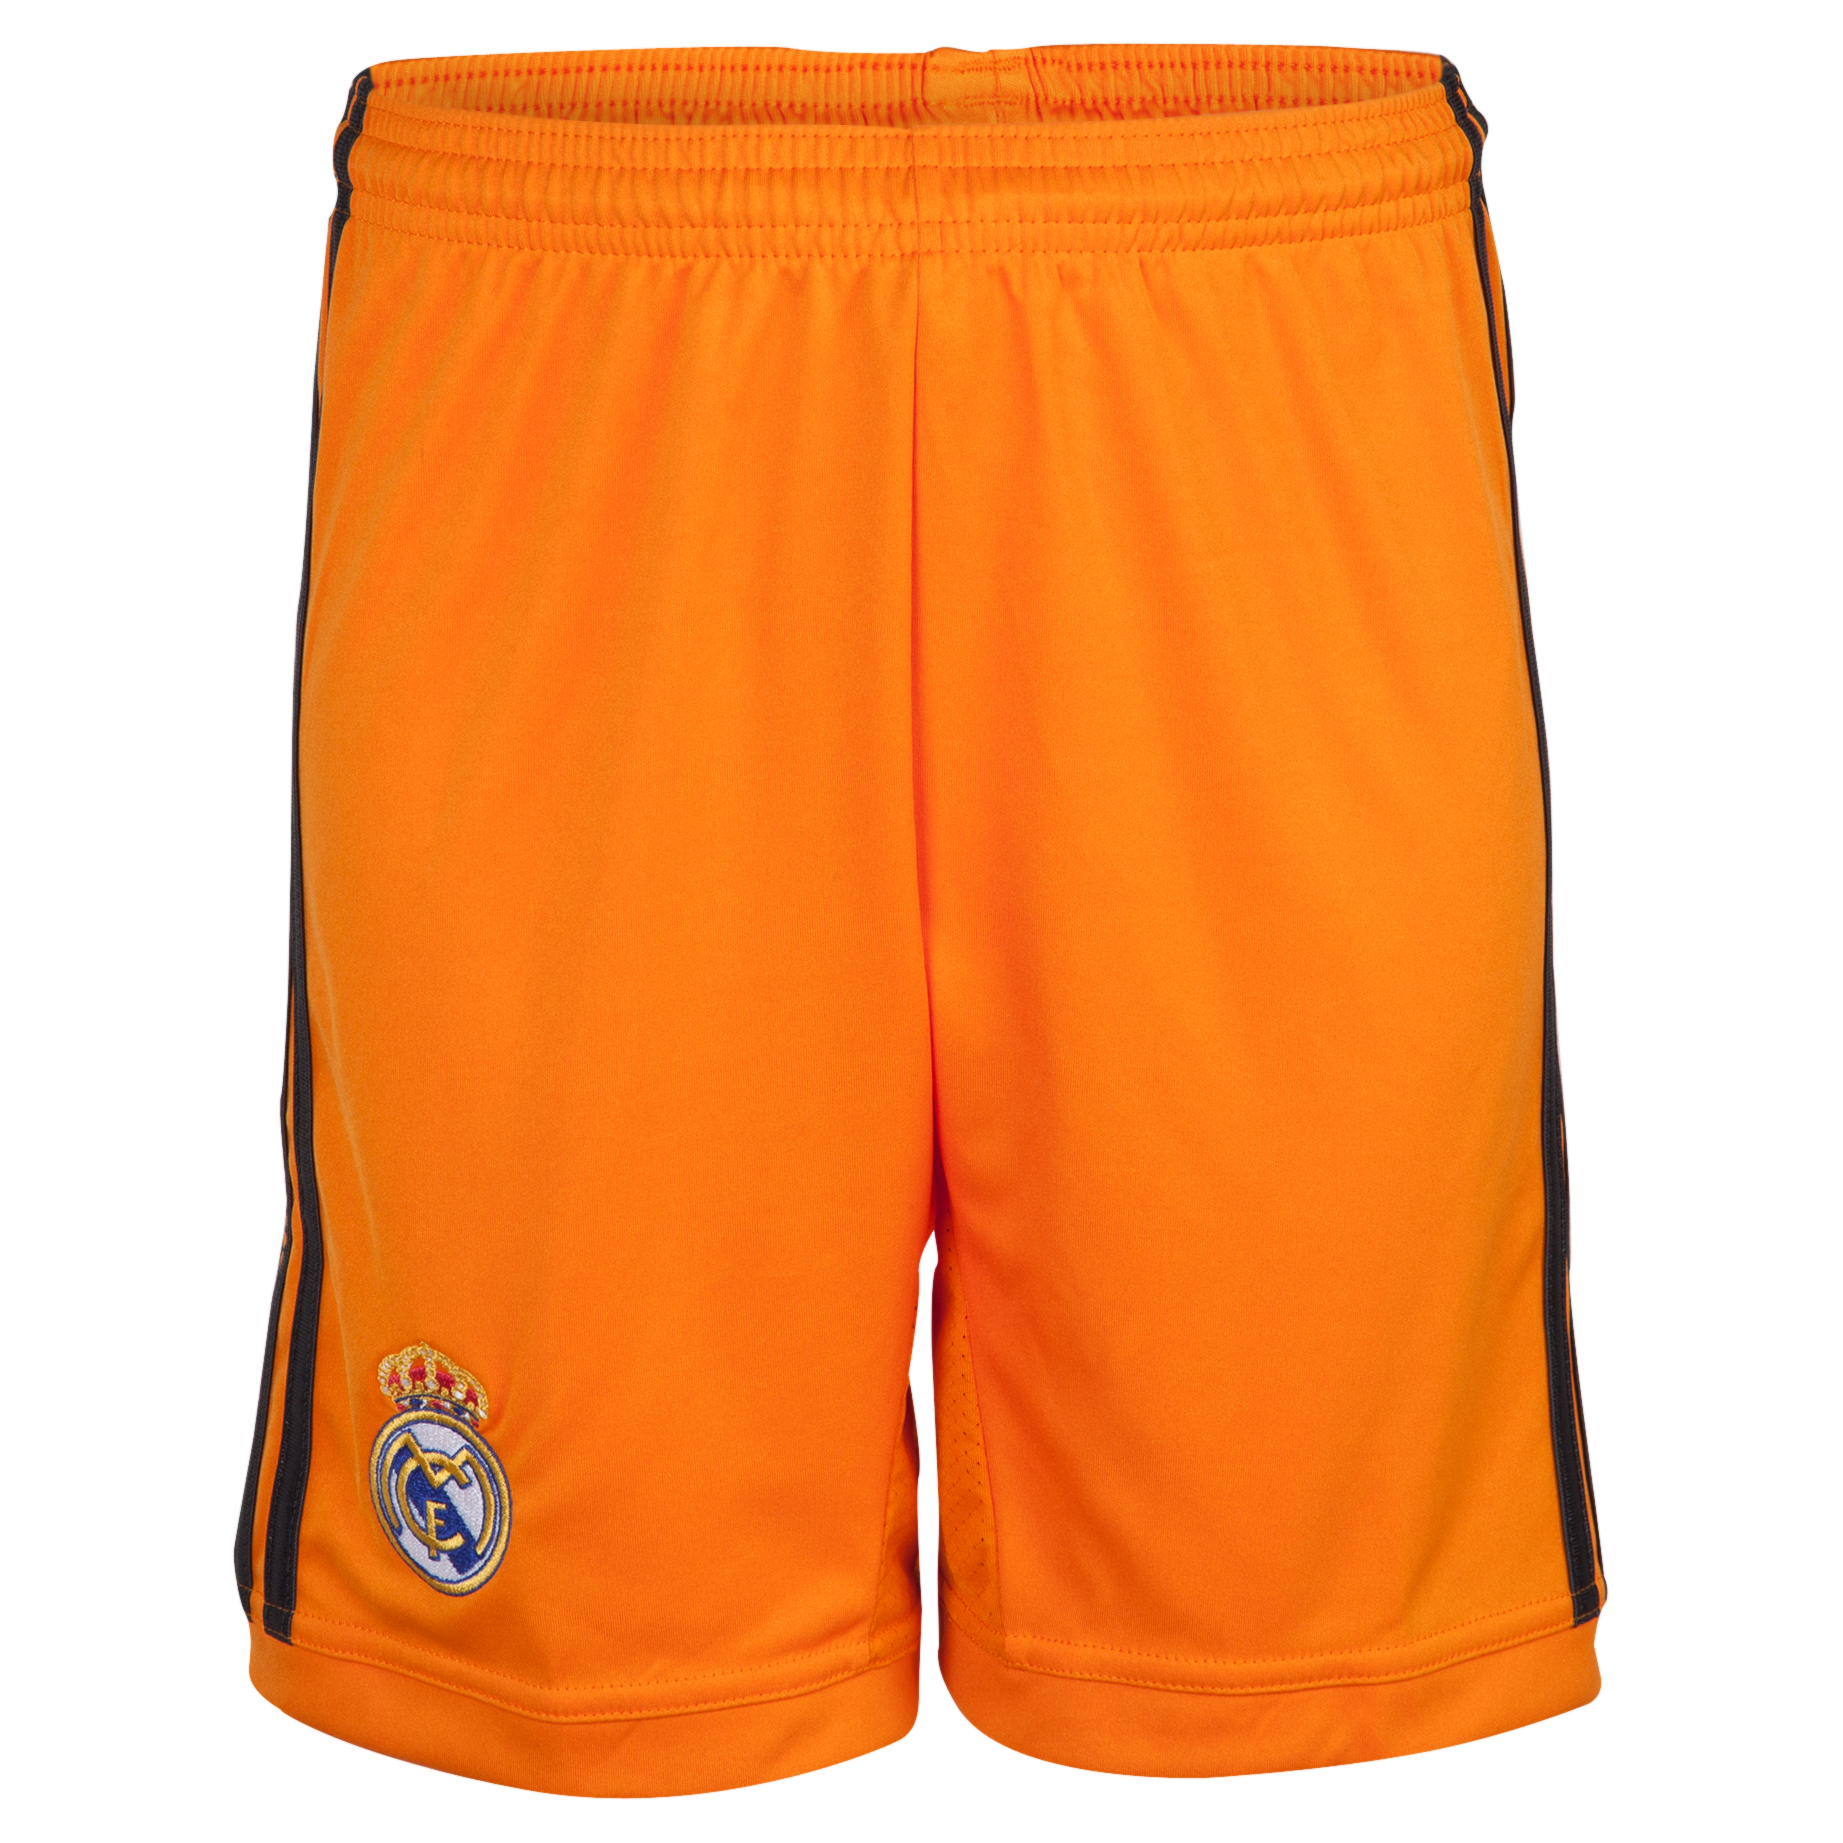 Real Madrid Third Shorts 2013/14